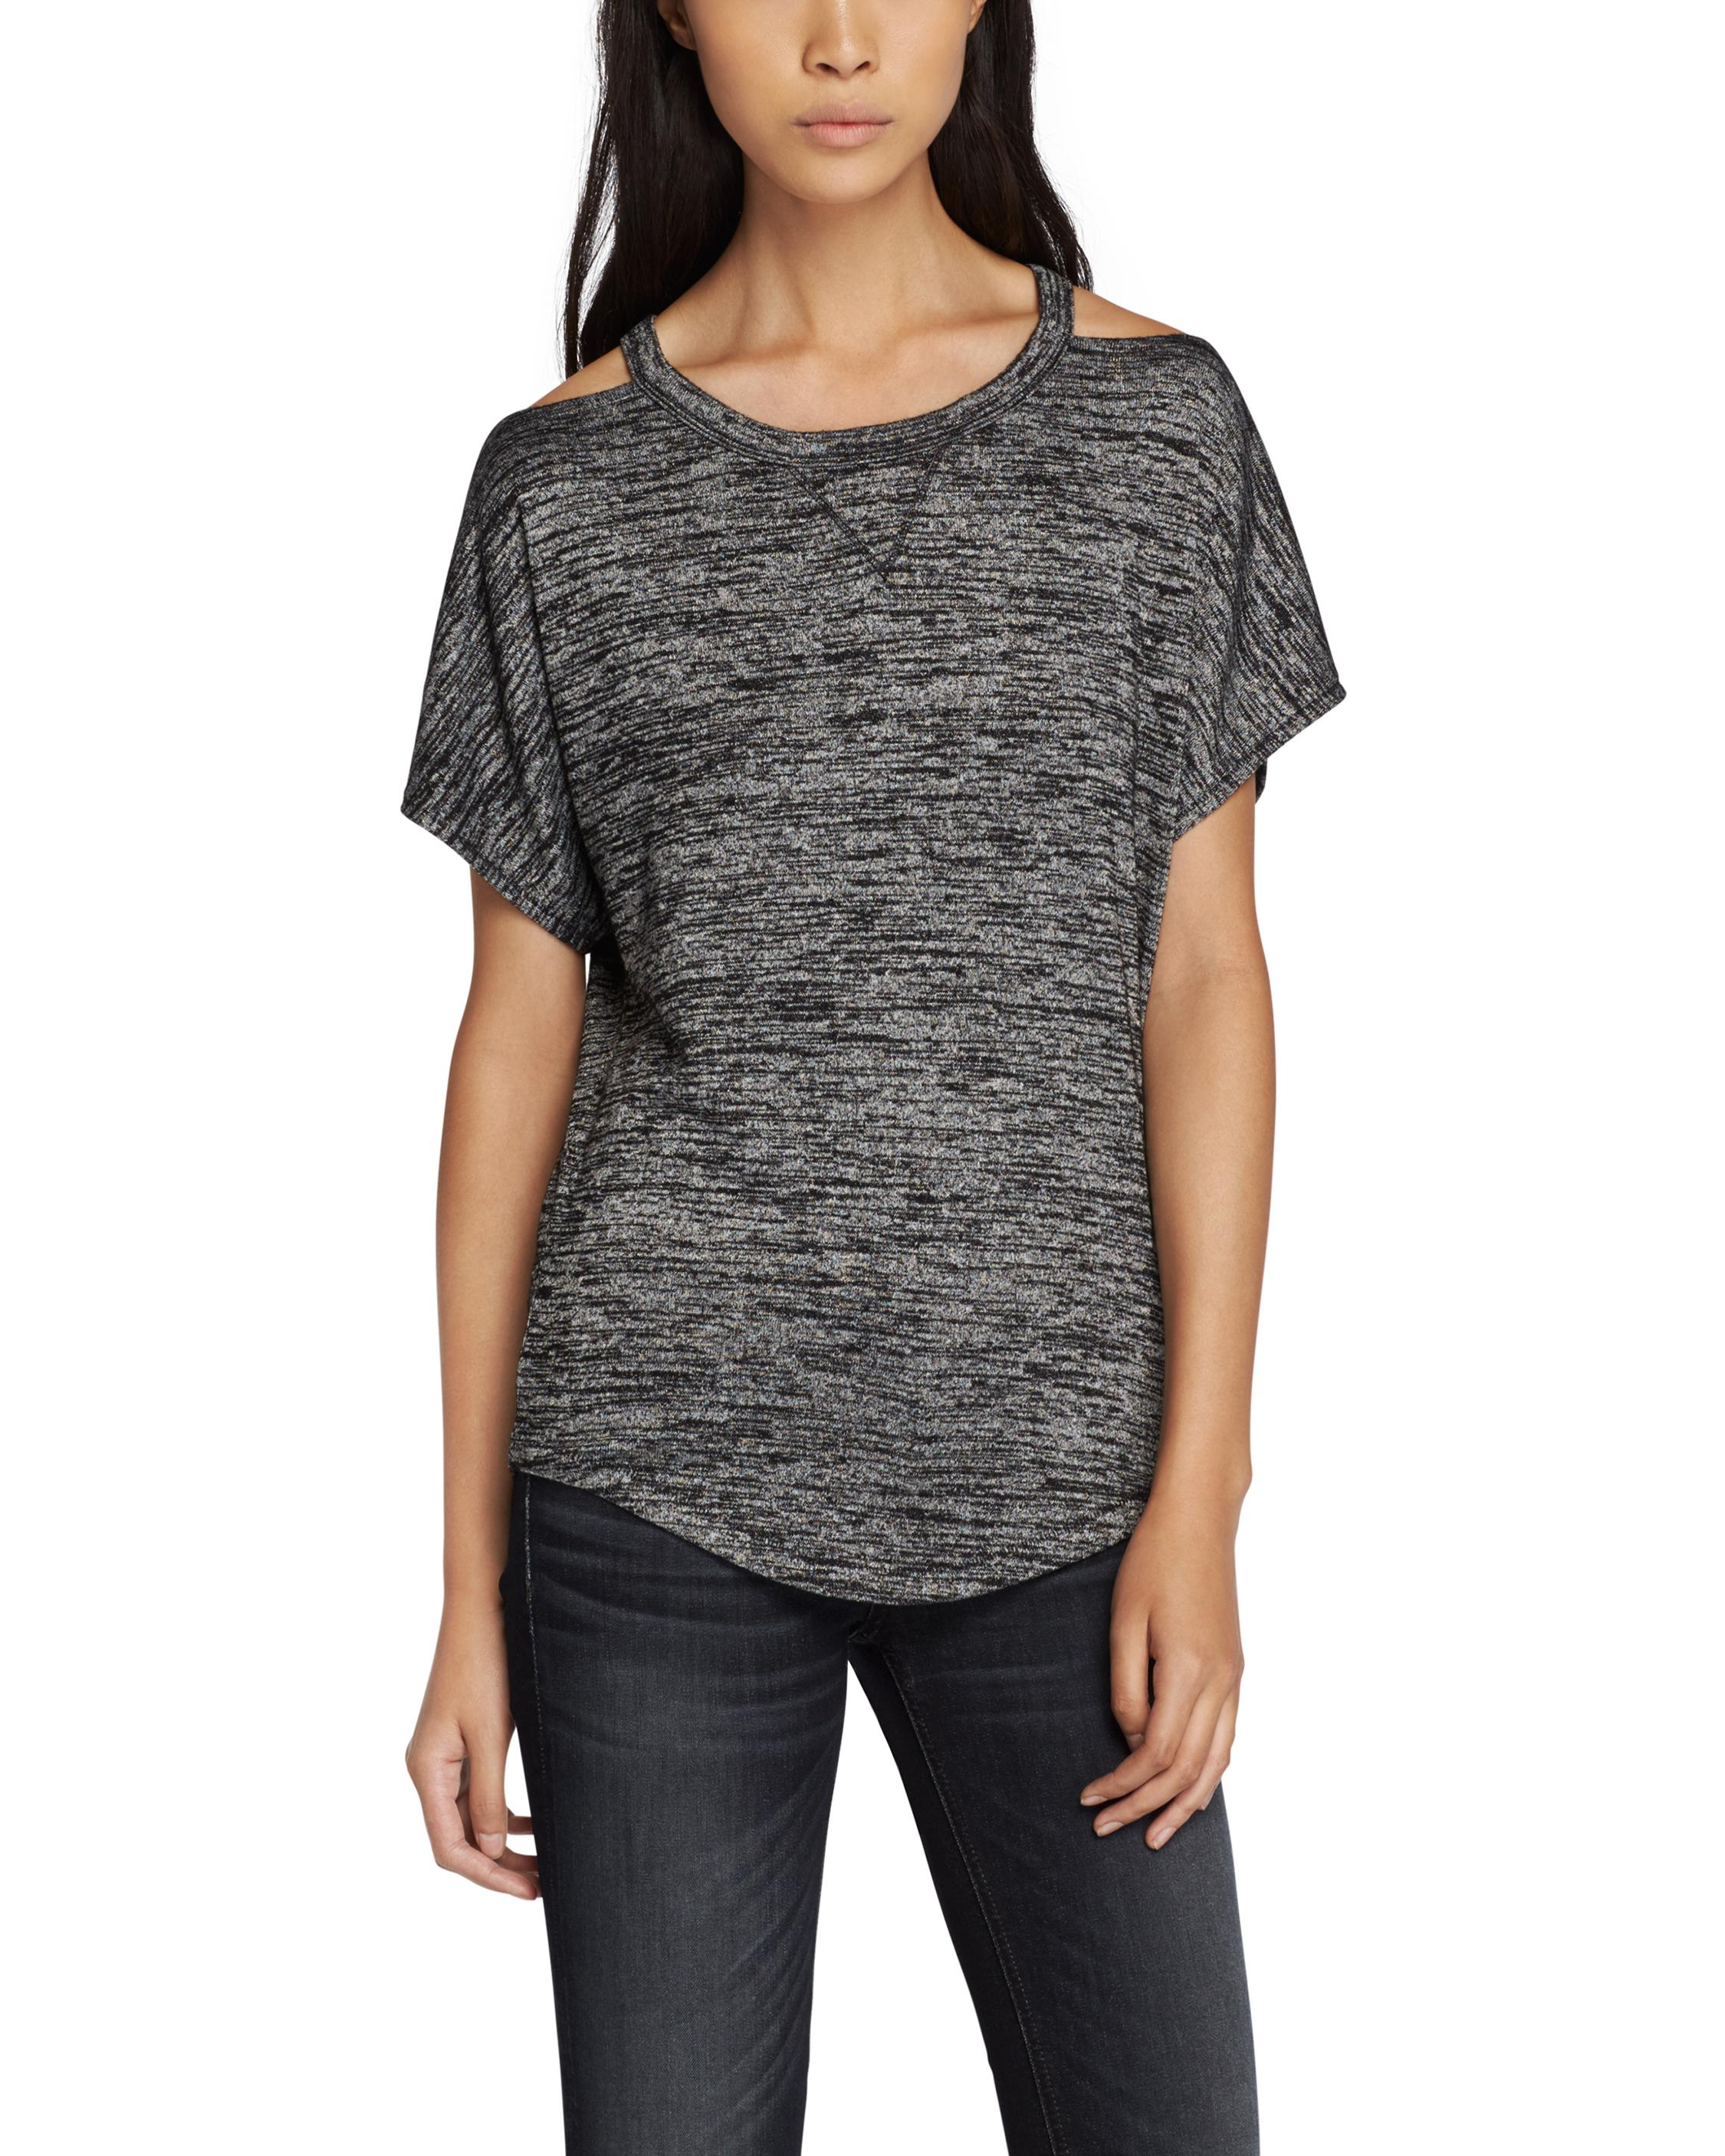 Collections Sale Online Clearance Online Rag & Bone Short Sleeve High-Low T-Shirt Free Shipping Order Cheap Sale Wide Range Of 4Hll3OlfWL